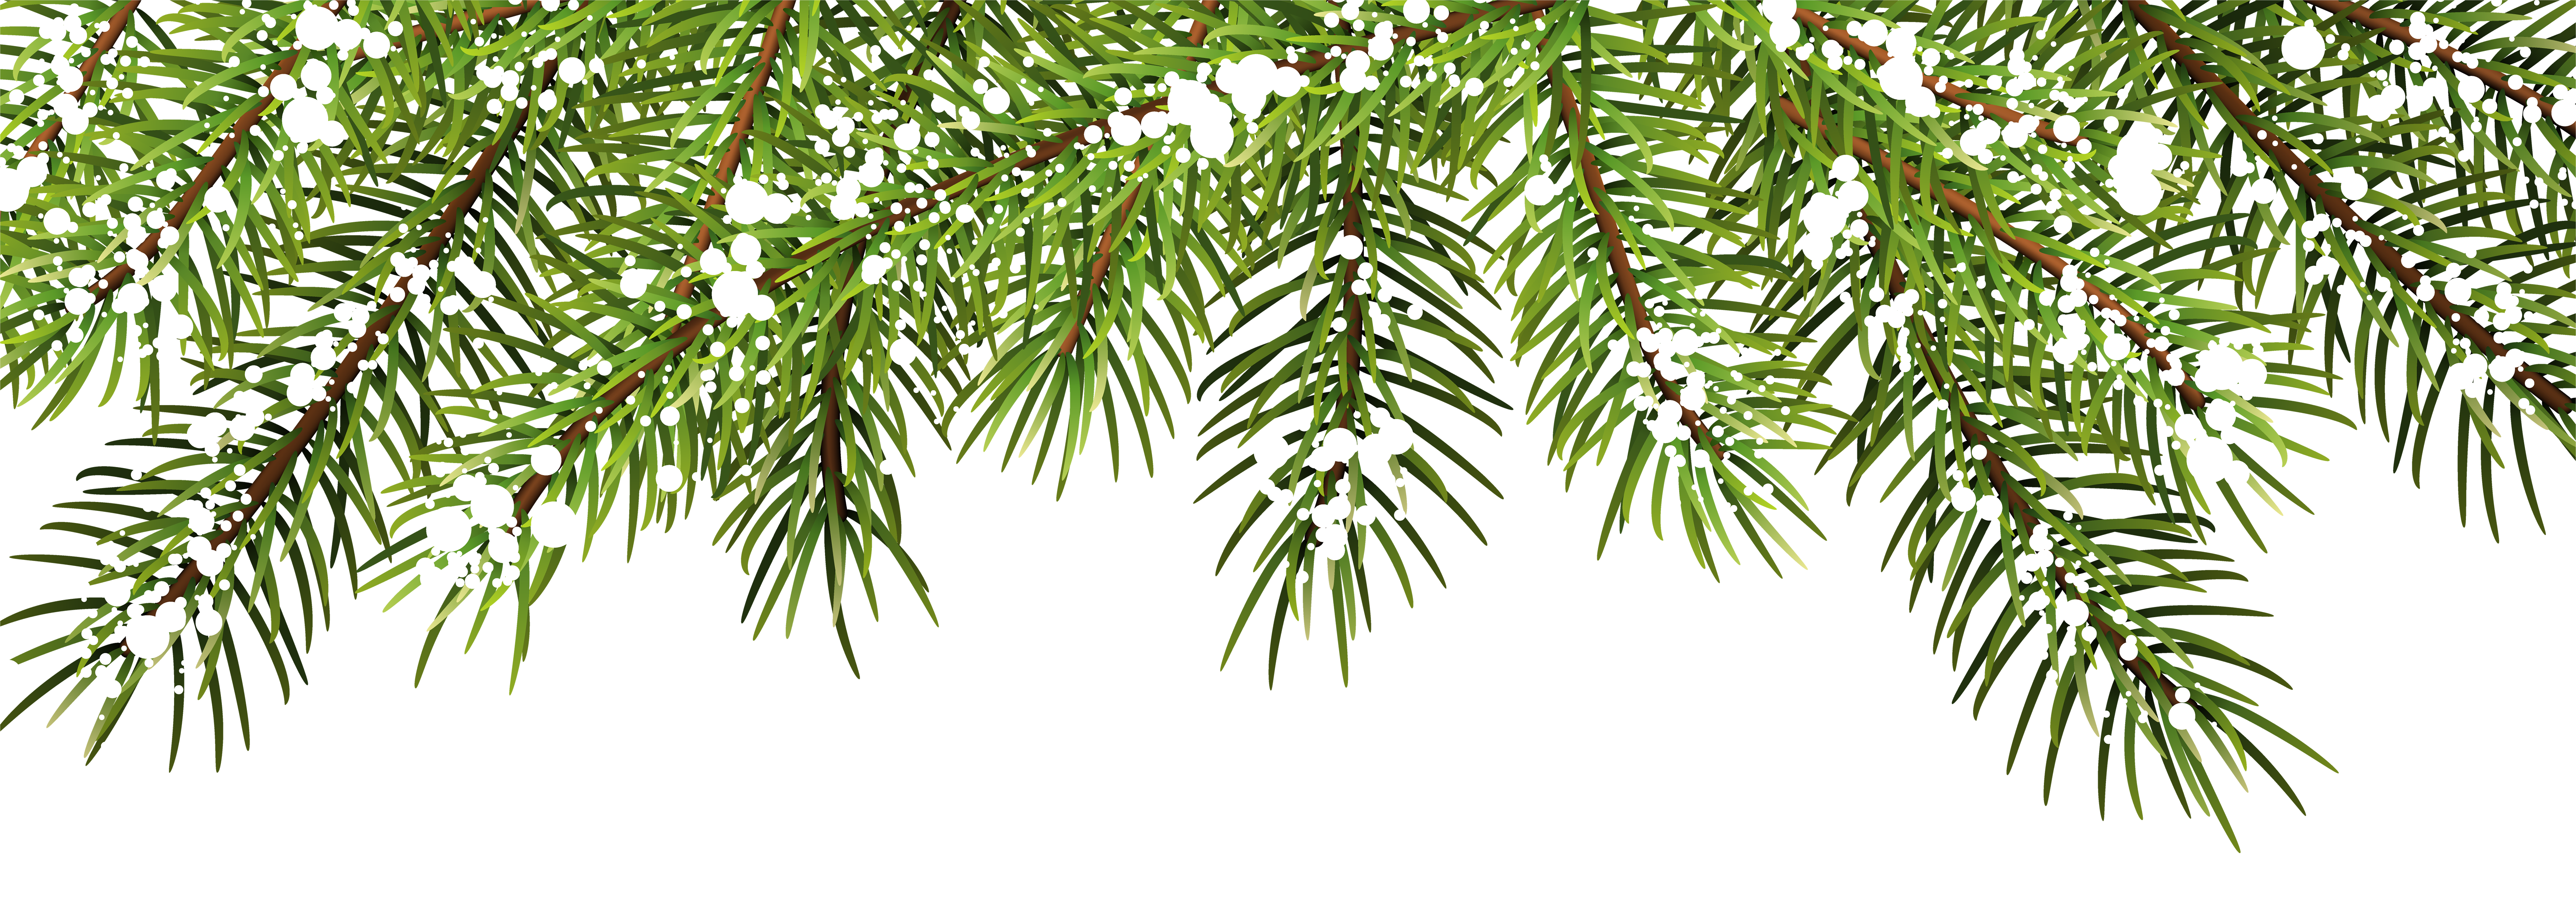 Christmas Pine Branches Decor PNG Clip Art.